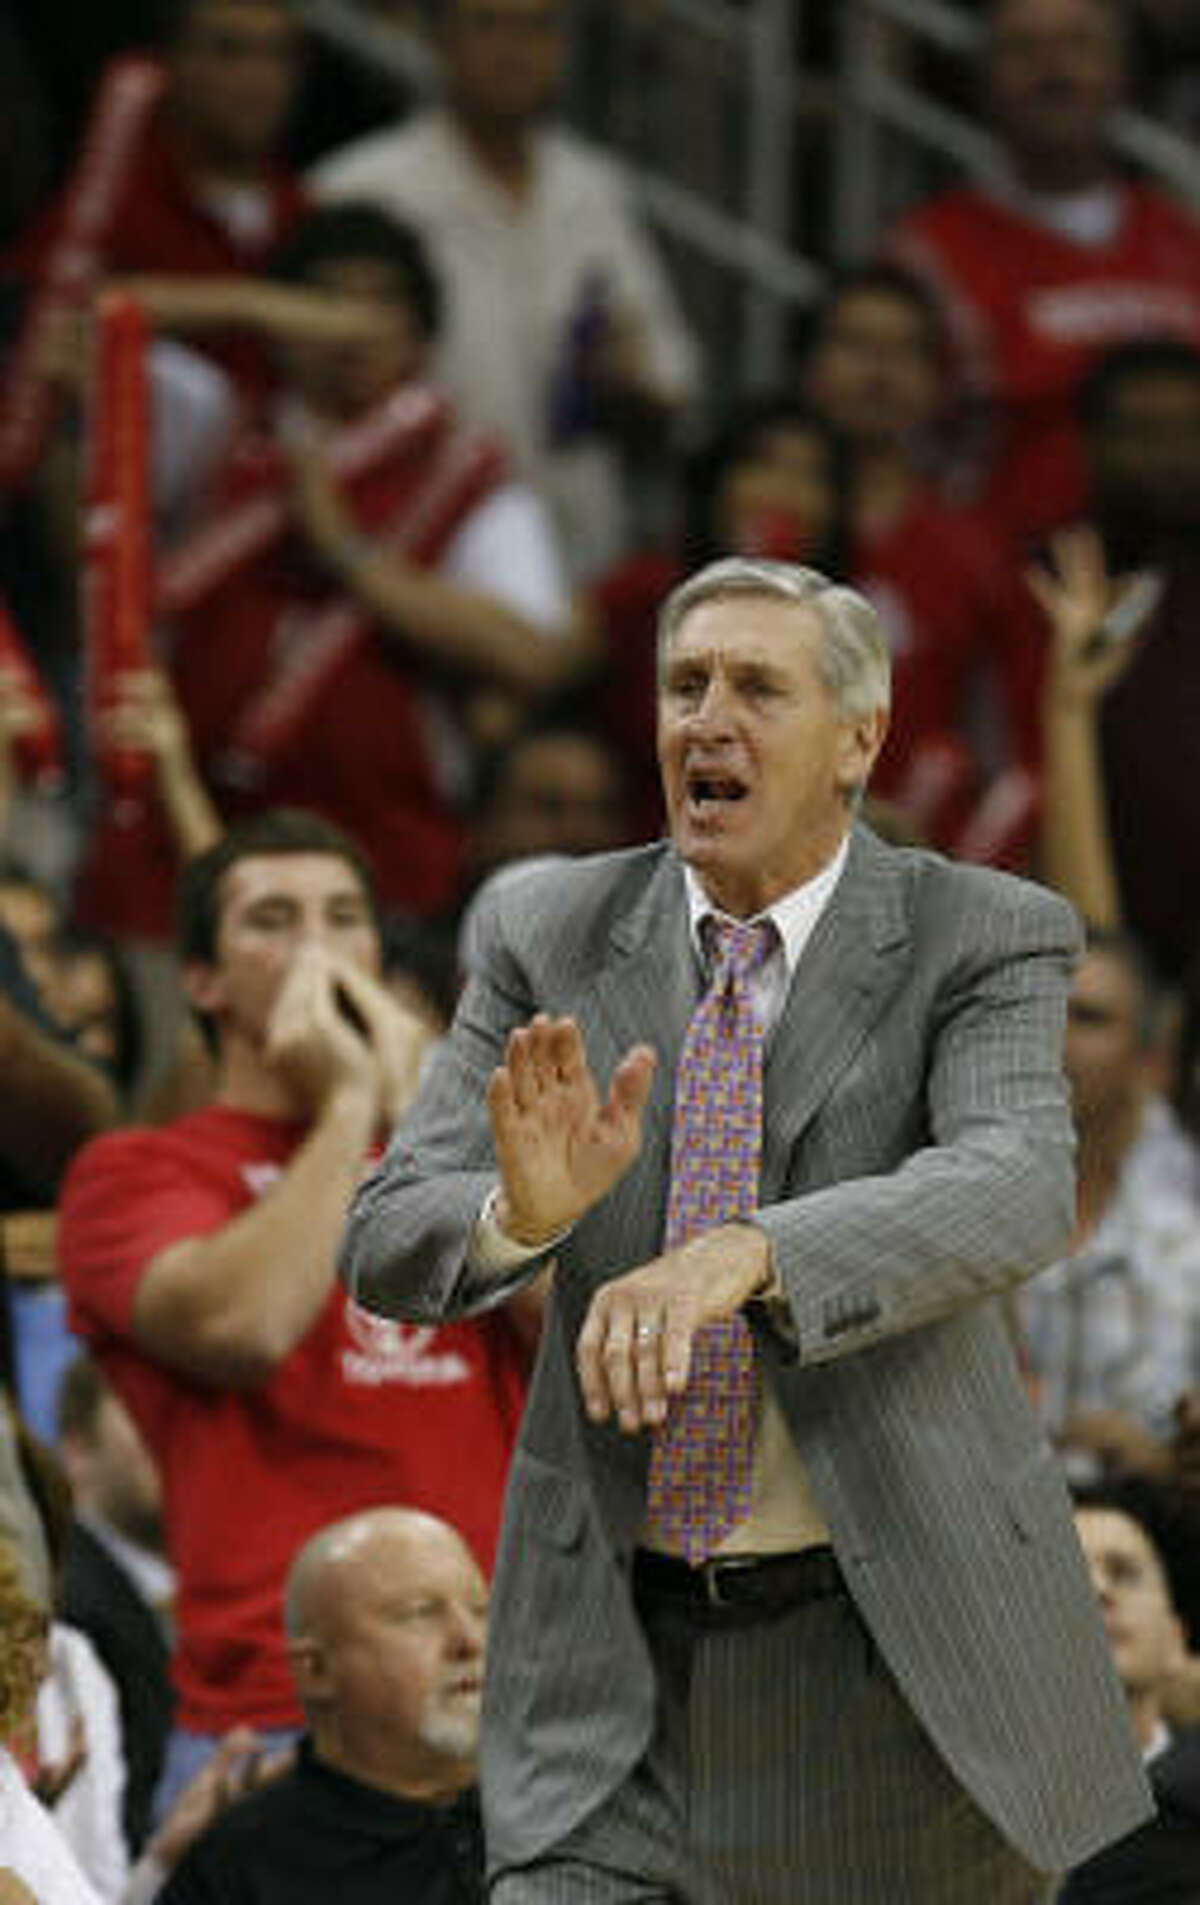 The Jerry Sloan-coached Jazz often encountered the Rockets in the postseason during his 23 seasons in Utah.